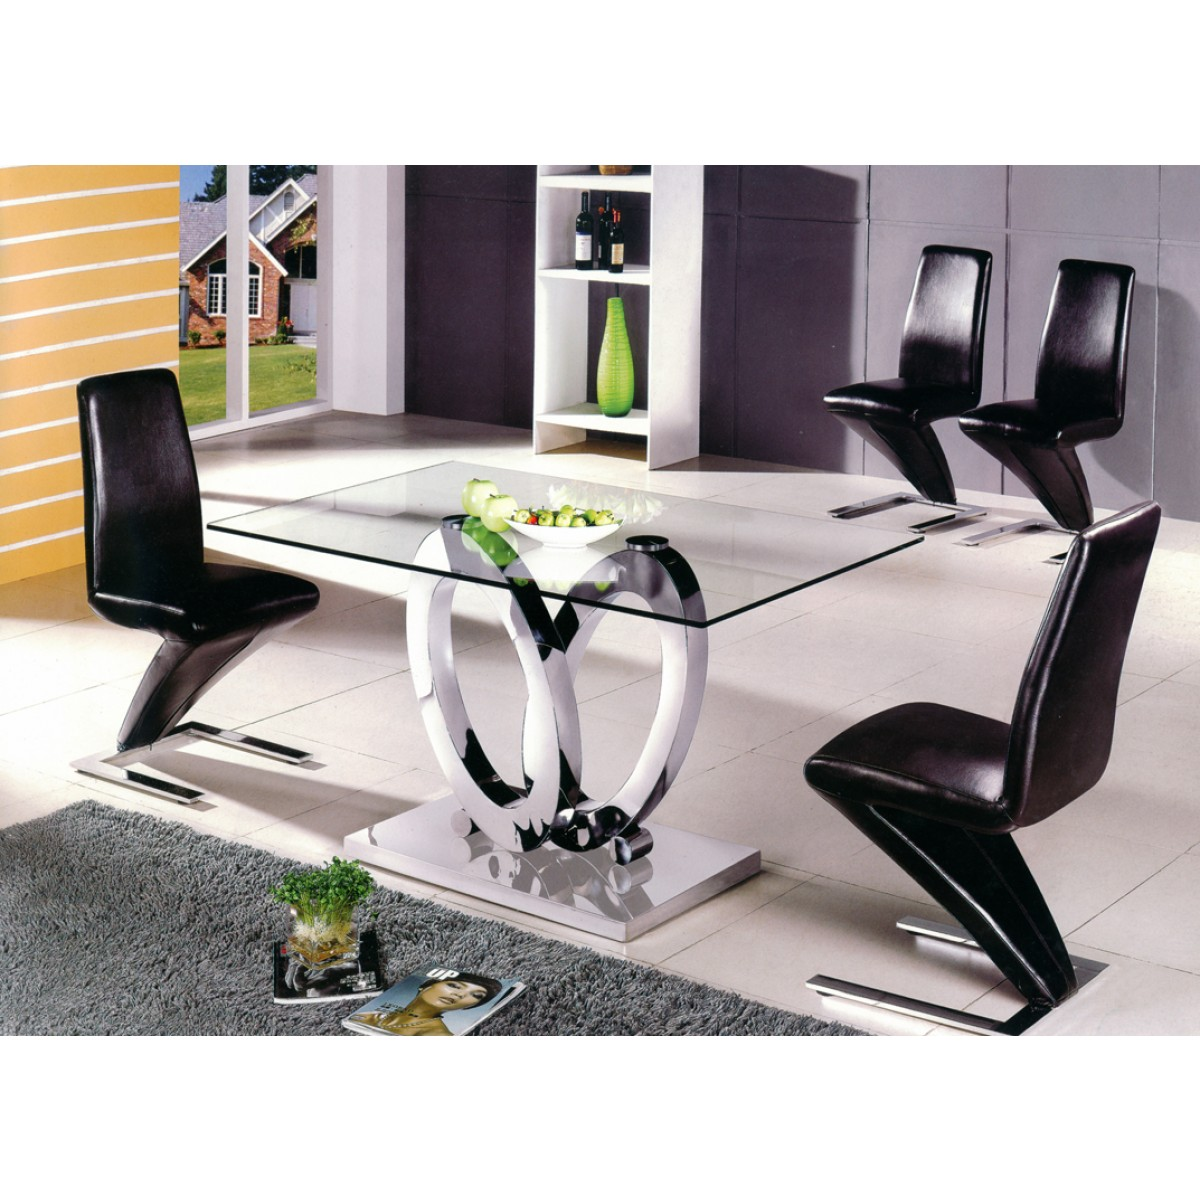 Table manger design ellipse taille au choix tables for Meuble design table salle a manger